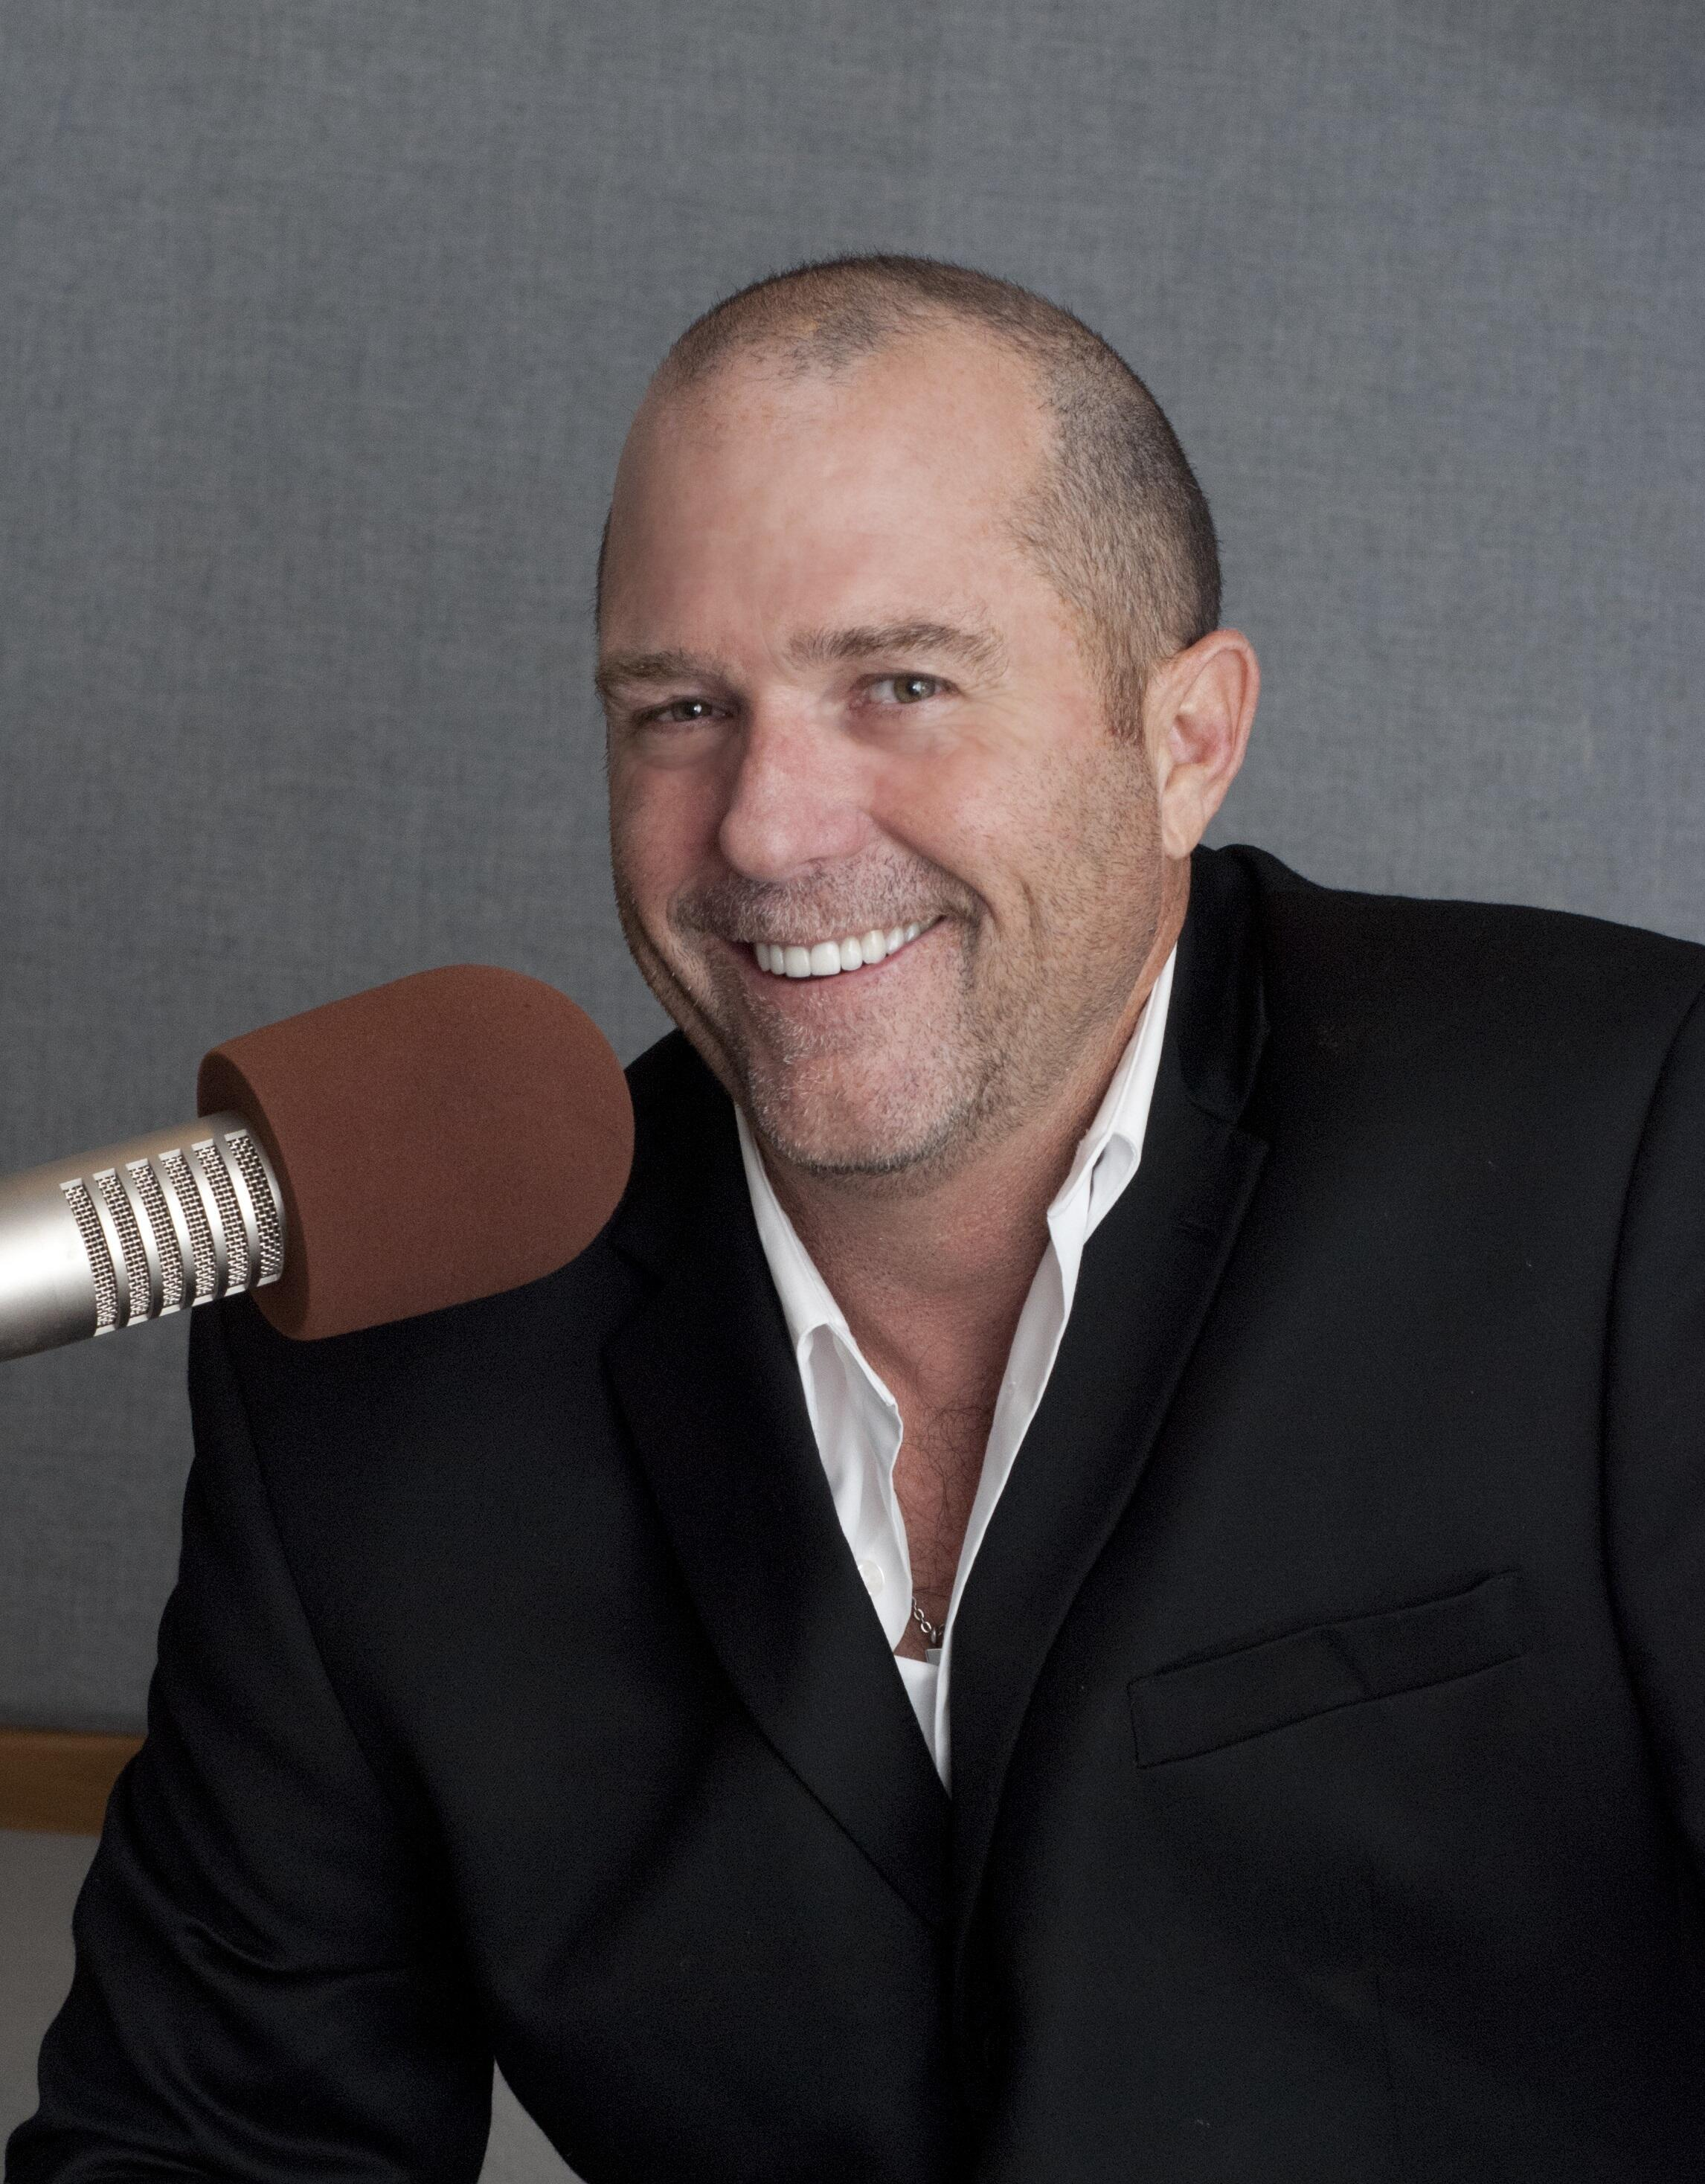 Listen to the The Pat Walsh Show Episode - Pat Walsh Show Aug 16 Hr 2 on iHeartRadio | iHeartRadio